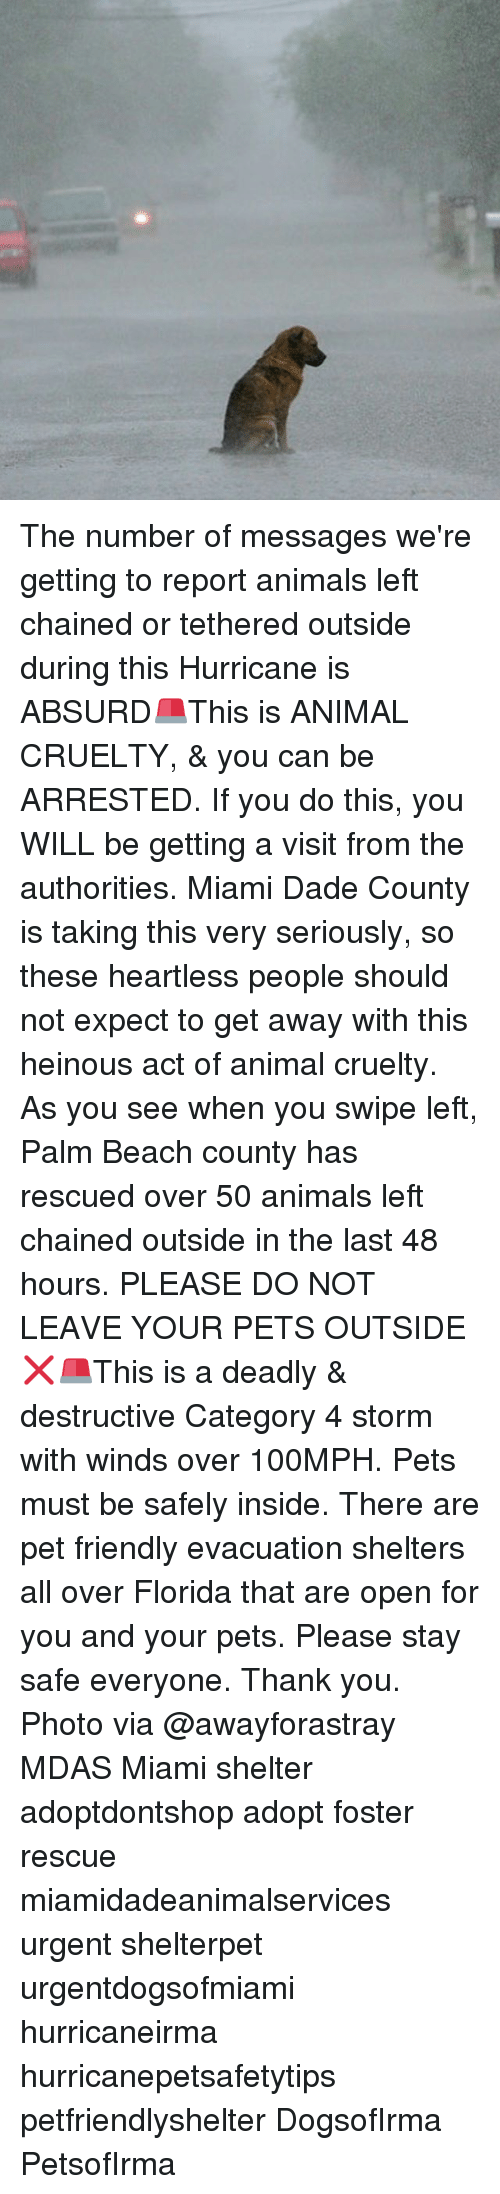 Reportate: The number of messages we're getting to report animals left chained or tethered outside during this Hurricane is ABSURD🚨This is ANIMAL CRUELTY, & you can be ARRESTED. If you do this, you WILL be getting a visit from the authorities. Miami Dade County is taking this very seriously, so these heartless people should not expect to get away with this heinous act of animal cruelty. As you see when you swipe left, Palm Beach county has rescued over 50 animals left chained outside in the last 48 hours. PLEASE DO NOT LEAVE YOUR PETS OUTSIDE❌🚨This is a deadly & destructive Category 4 storm with winds over 100MPH. Pets must be safely inside. There are pet friendly evacuation shelters all over Florida that are open for you and your pets. Please stay safe everyone. Thank you. Photo via @awayforastray MDAS Miami shelter adoptdontshop adopt foster rescue miamidadeanimalservices urgent shelterpet urgentdogsofmiami hurricaneirma hurricanepetsafetytips petfriendlyshelter DogsofIrma PetsofIrma